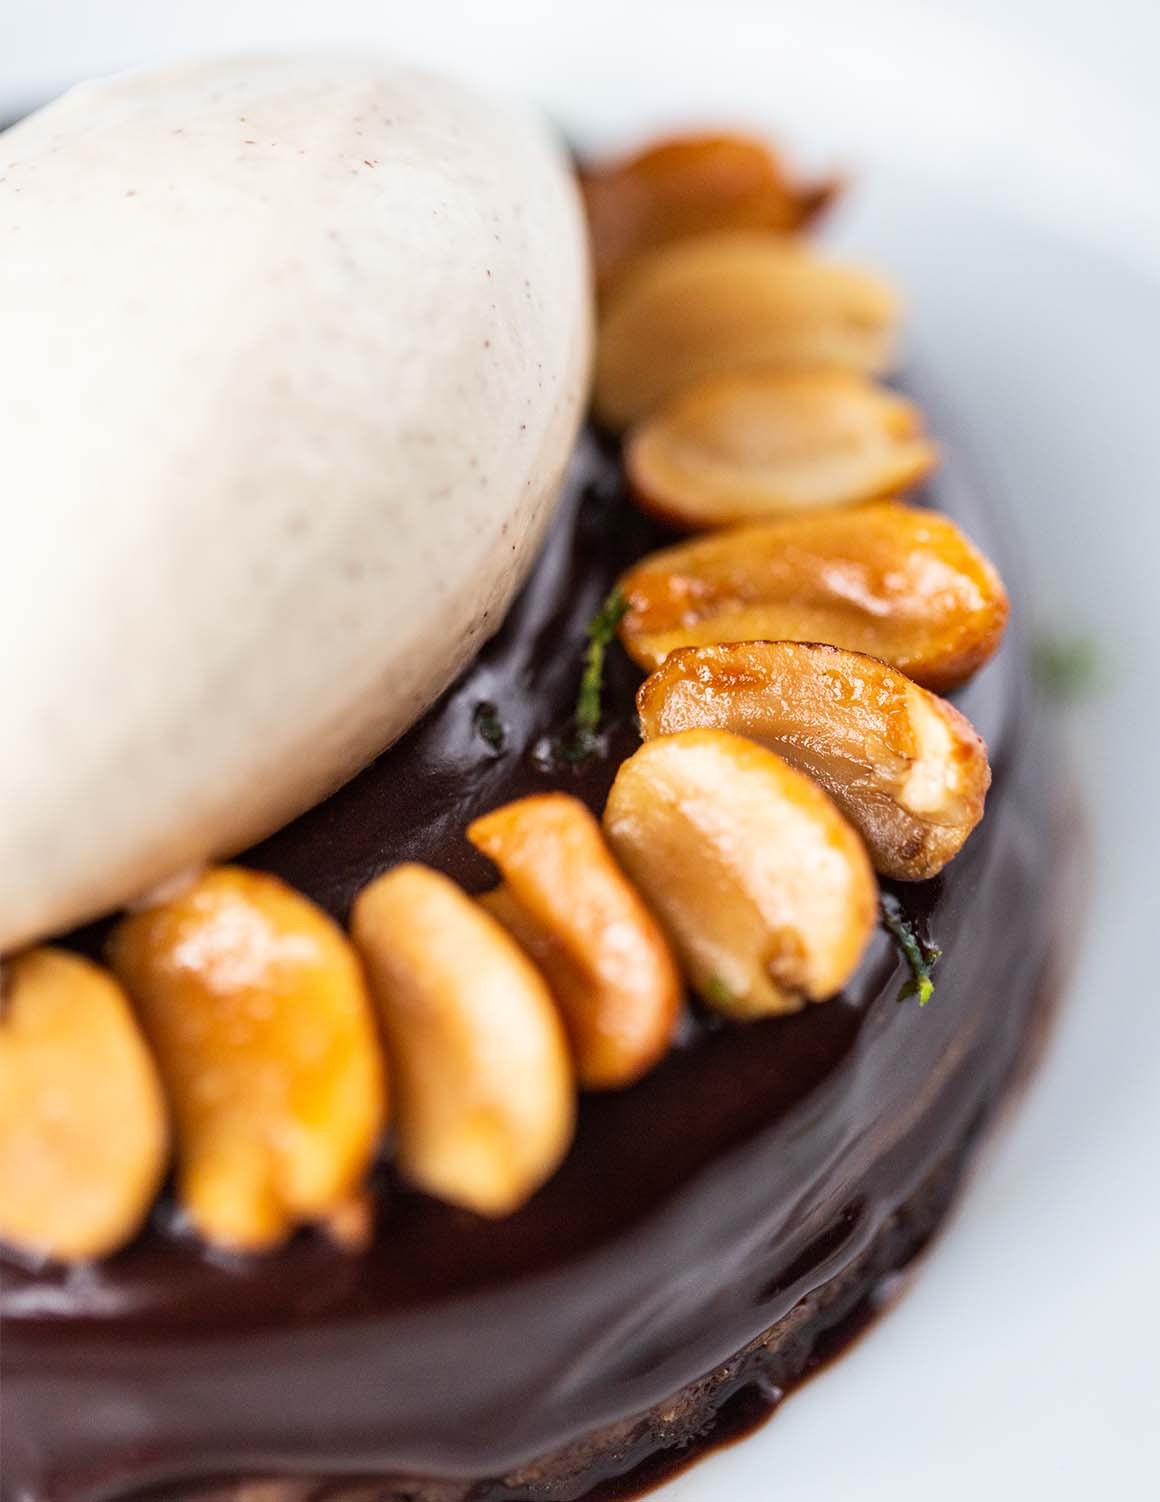 chocolate dessert with peanuts